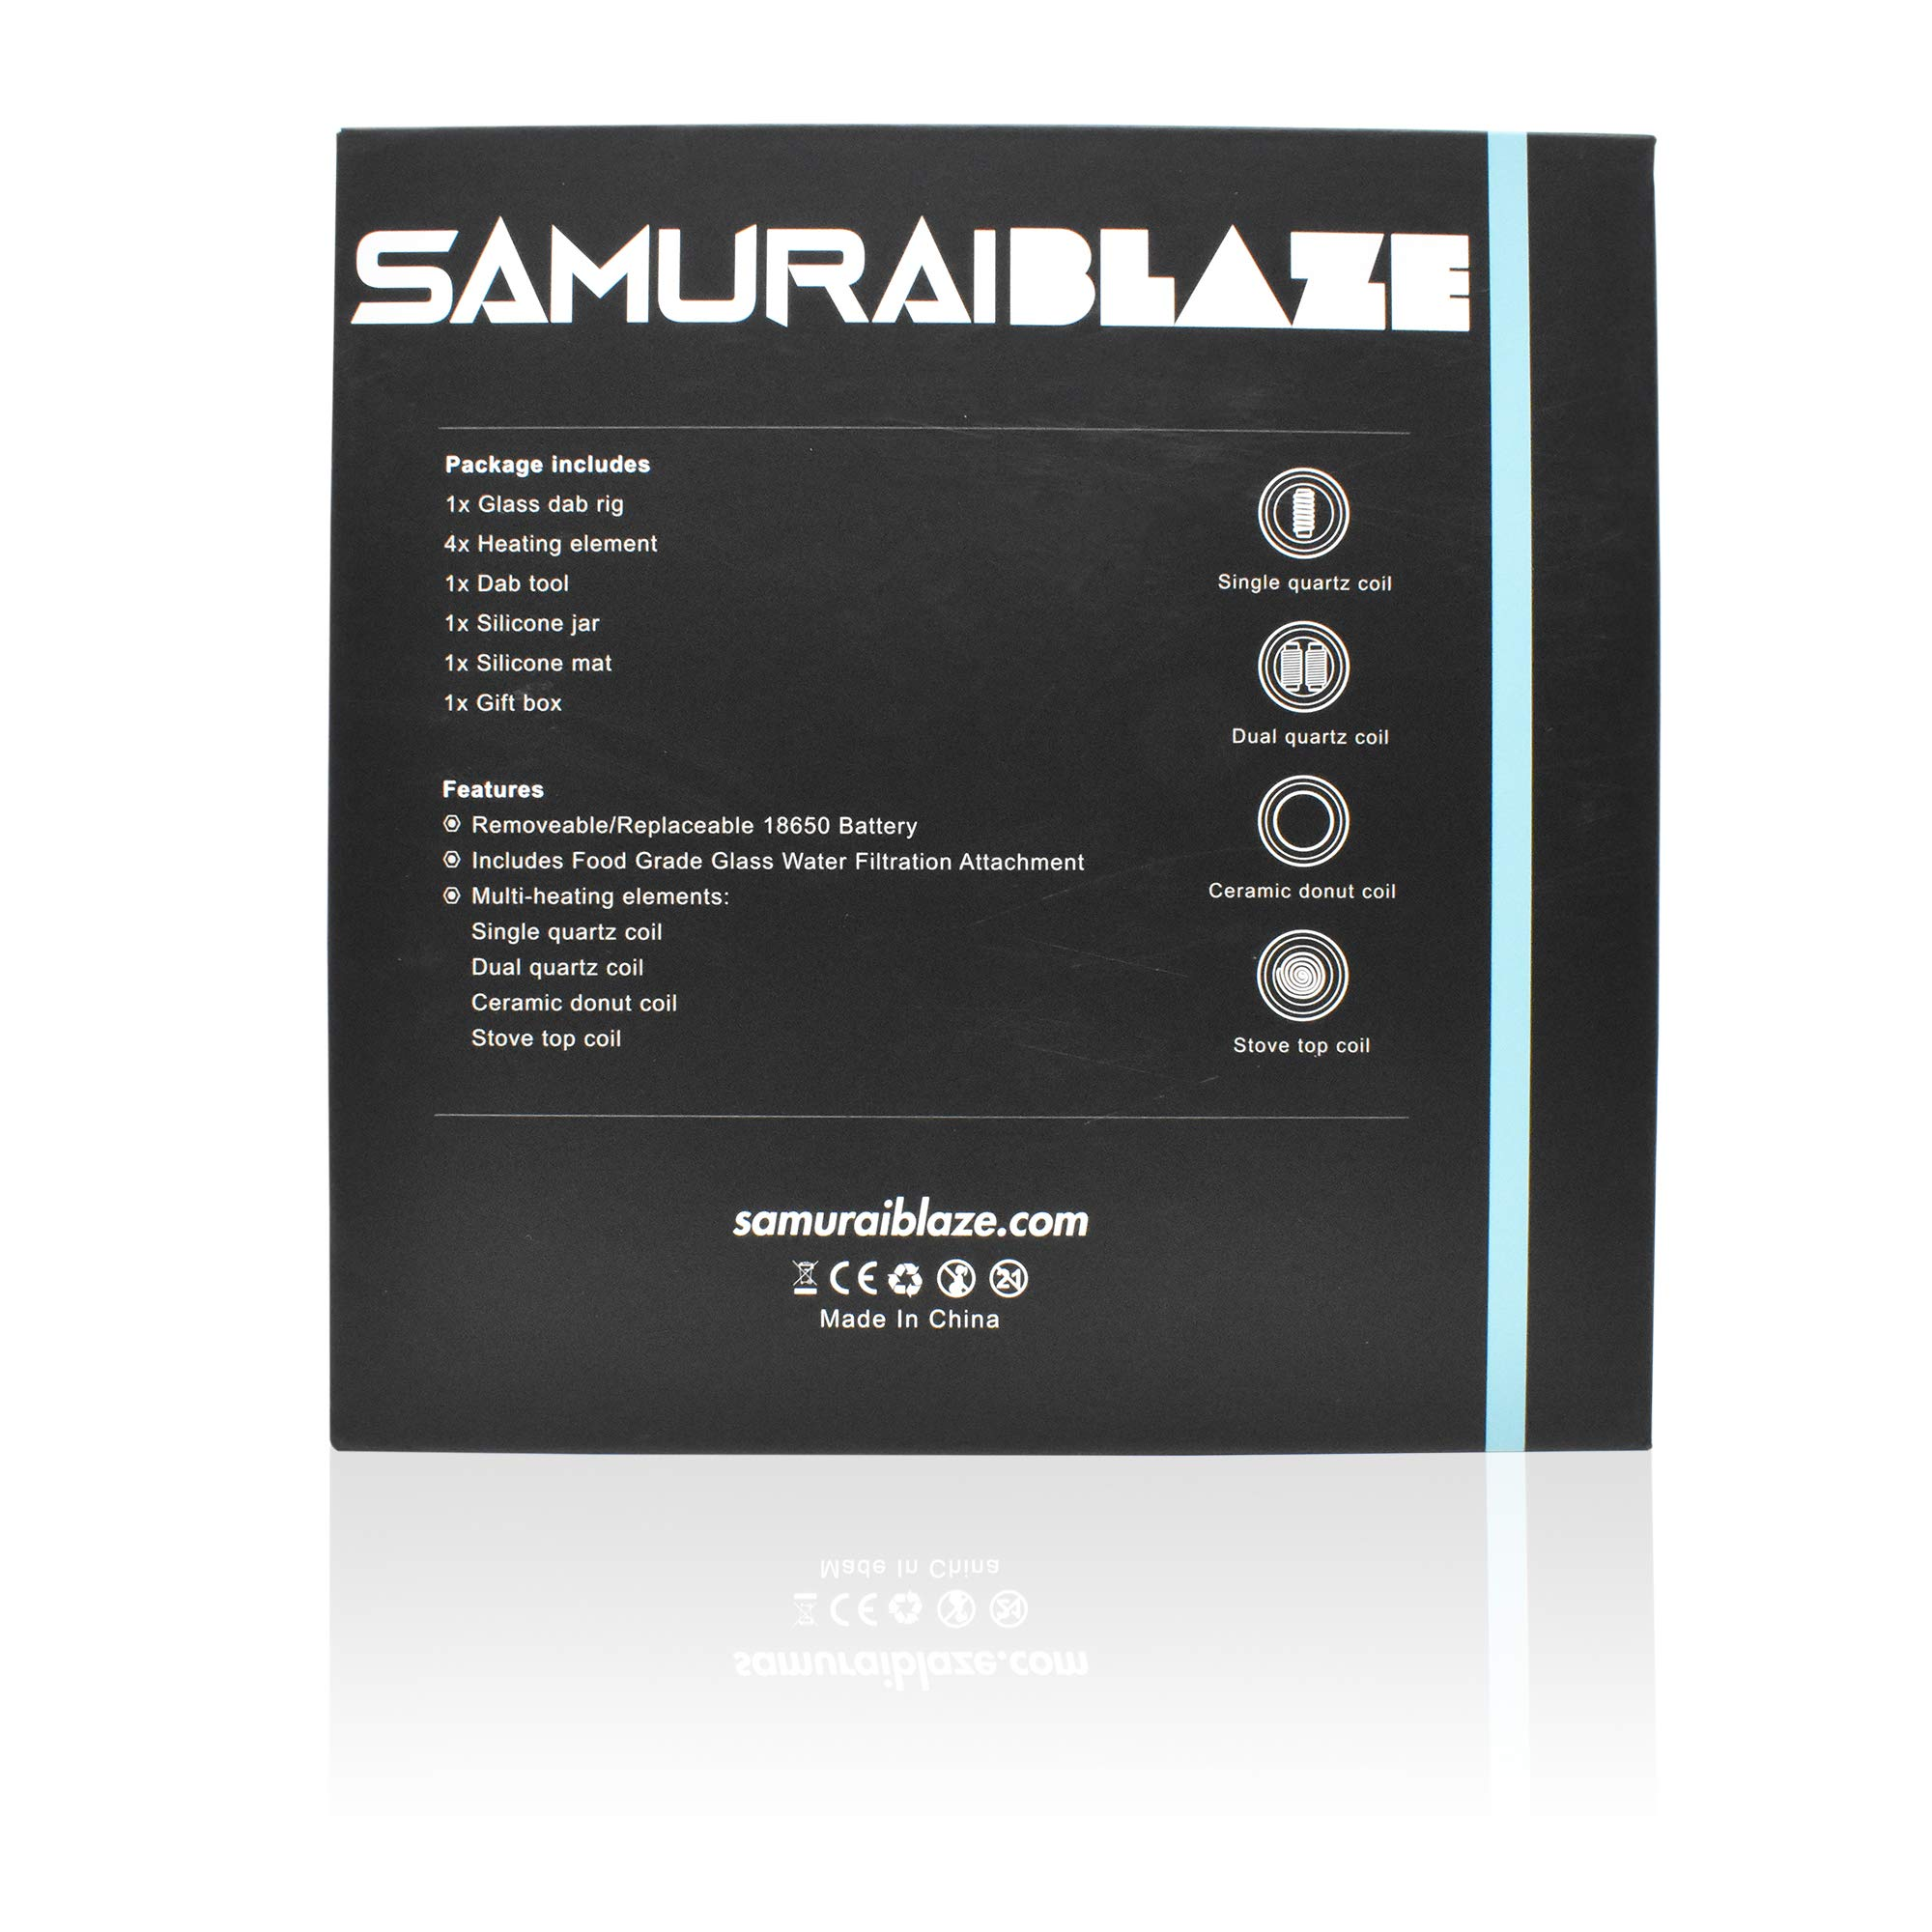 Smell Proof STASH Bag/Pouch/Bag   Thick Carbon Lined with Customizable Compartments - Art Supplies, Smelly Food, Smoking Accessories (BAPE, BAPE Combo) by SAMURAI BLAZE (Image #4)